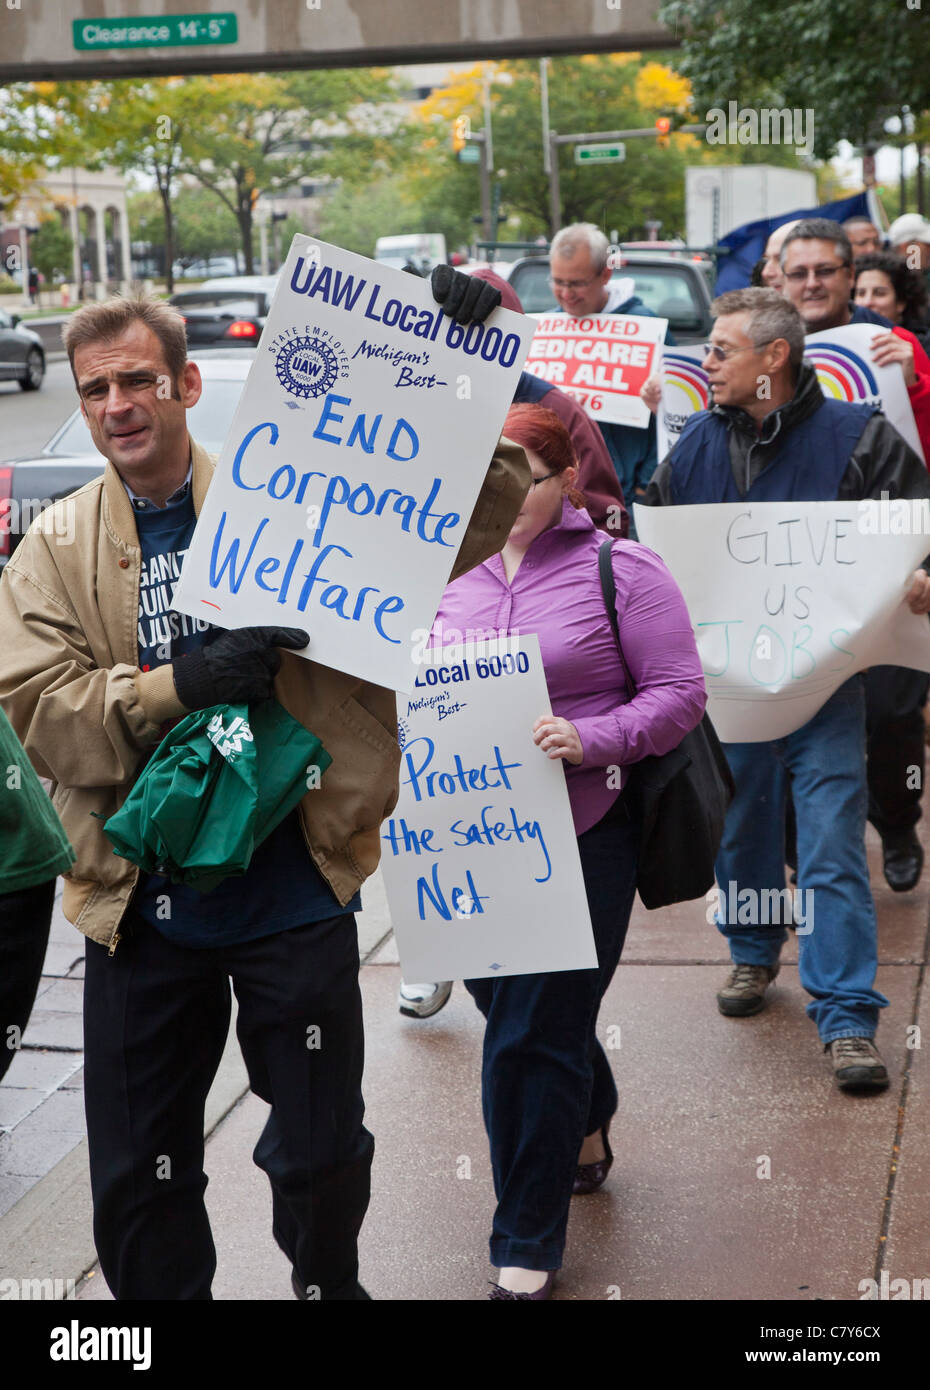 Public Employees Protest Michigan's Welfare Cuts - Stock Image